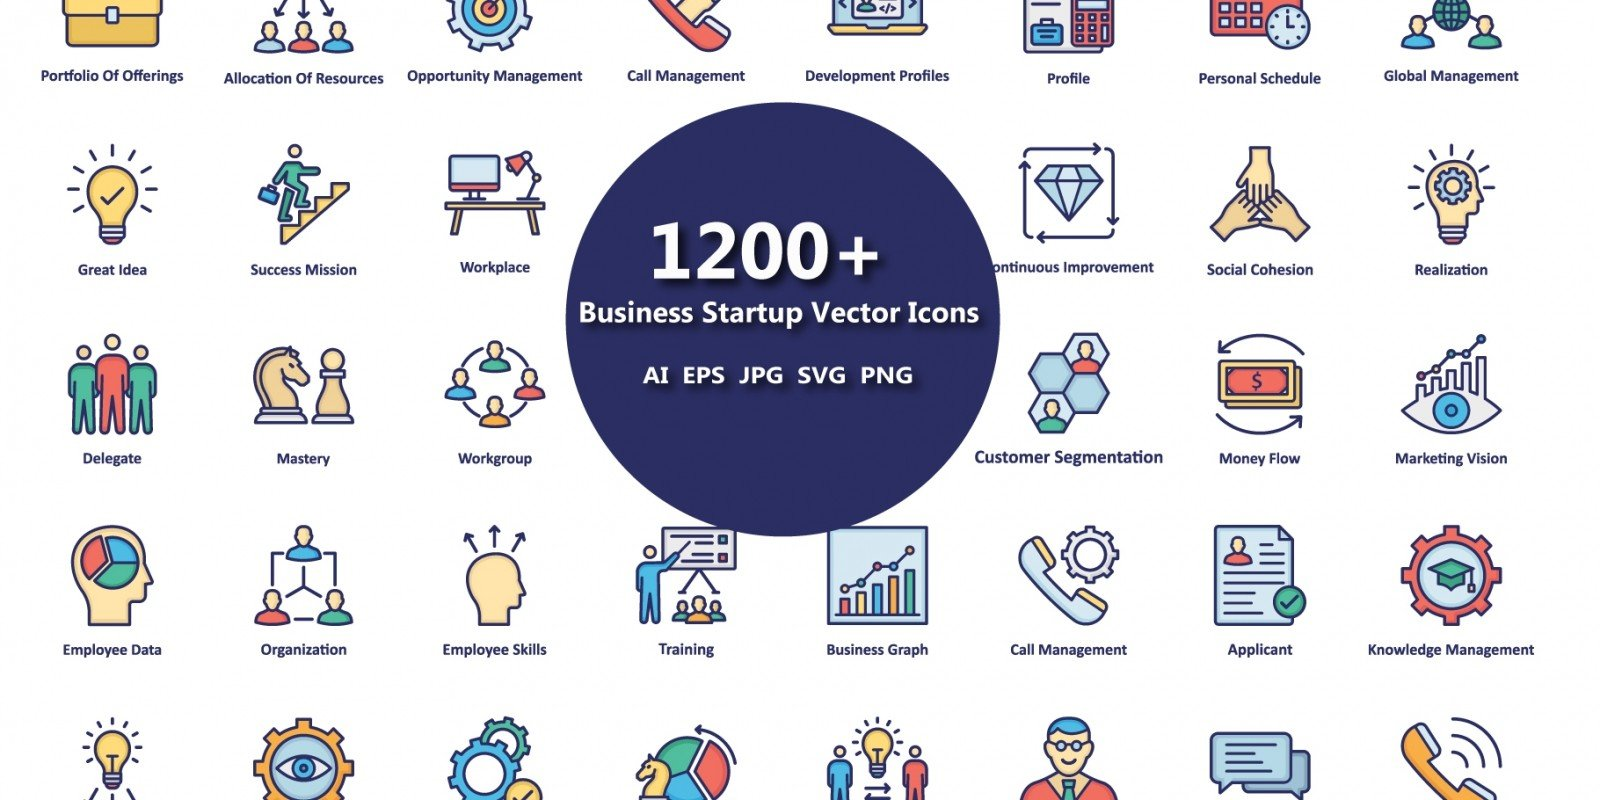 1200 Business Startup Vector icons